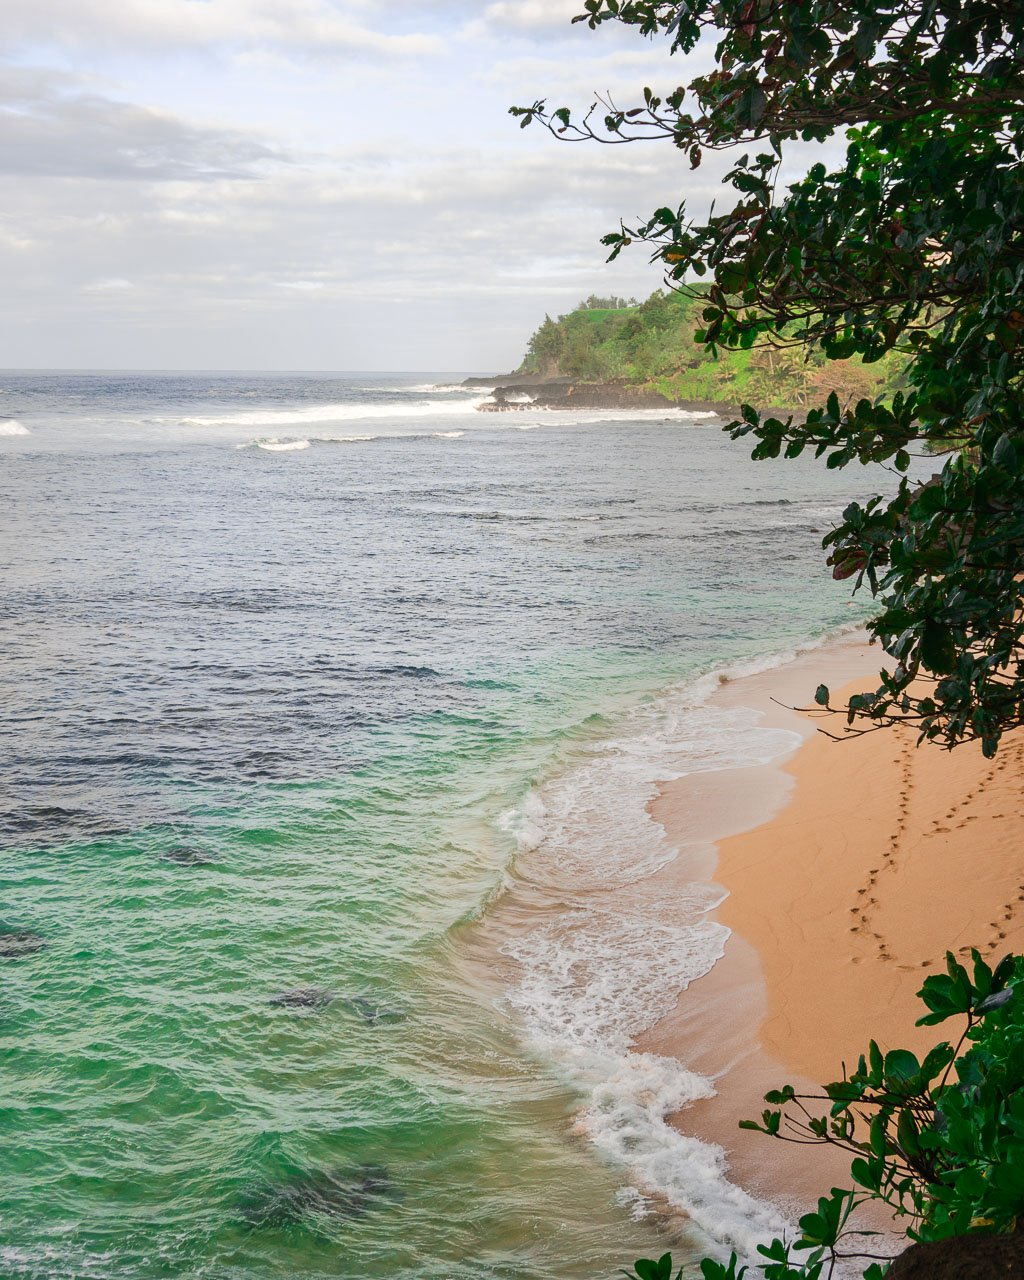 Hideaways Beach in Kauai